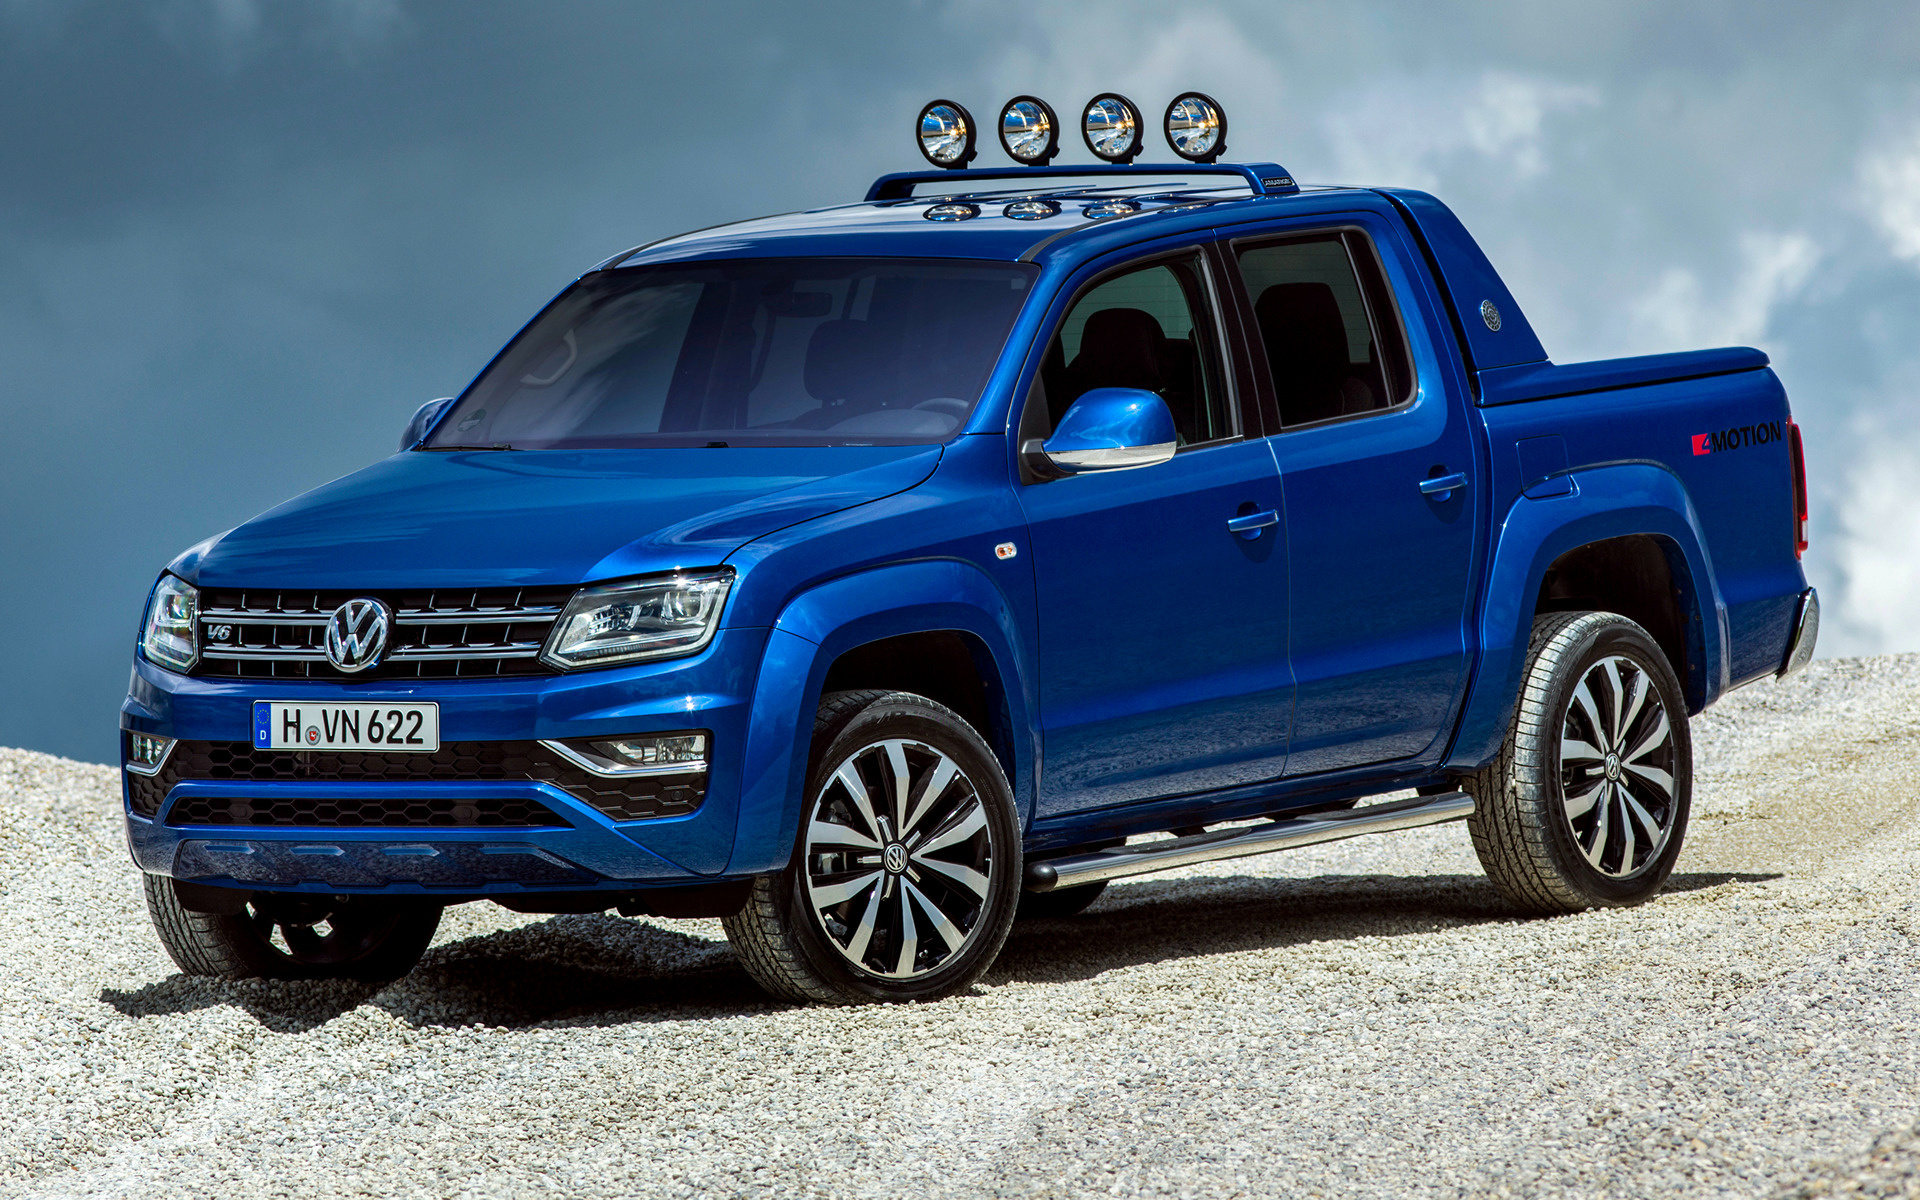 Audi Concept Car Wallpaper Volkswagen Amarok Aventura Double Cab 2016 Wallpapers